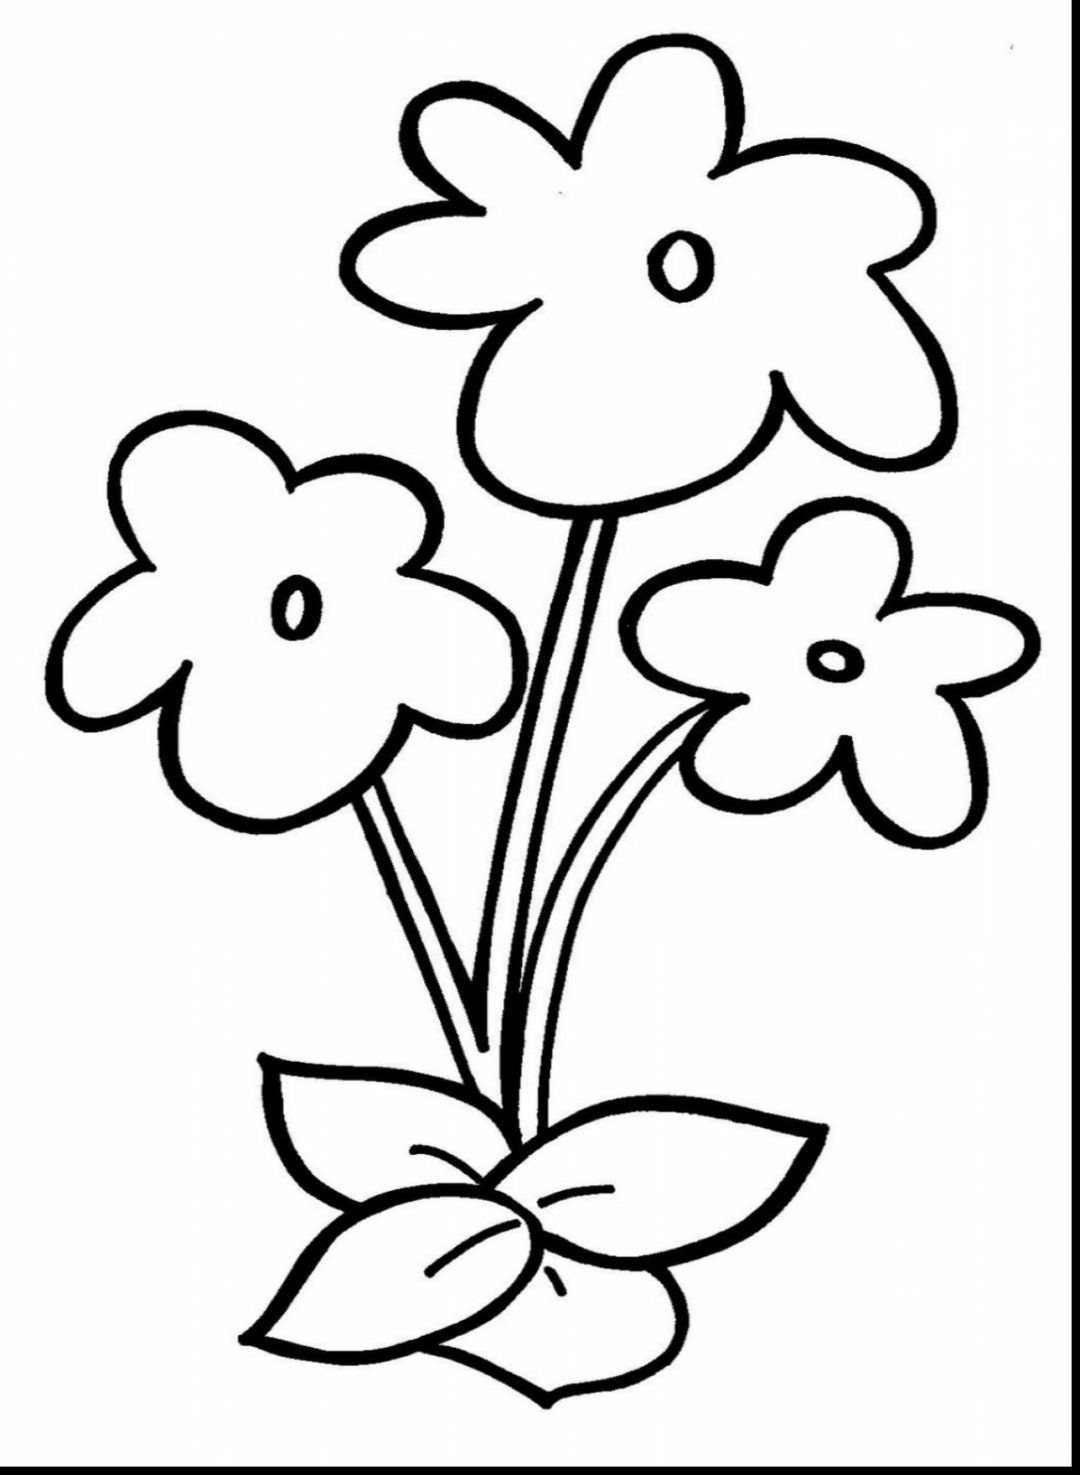 Coloring Rocks Flower Coloring Pages Flower Coloring Sheets Mandala Coloring Pages